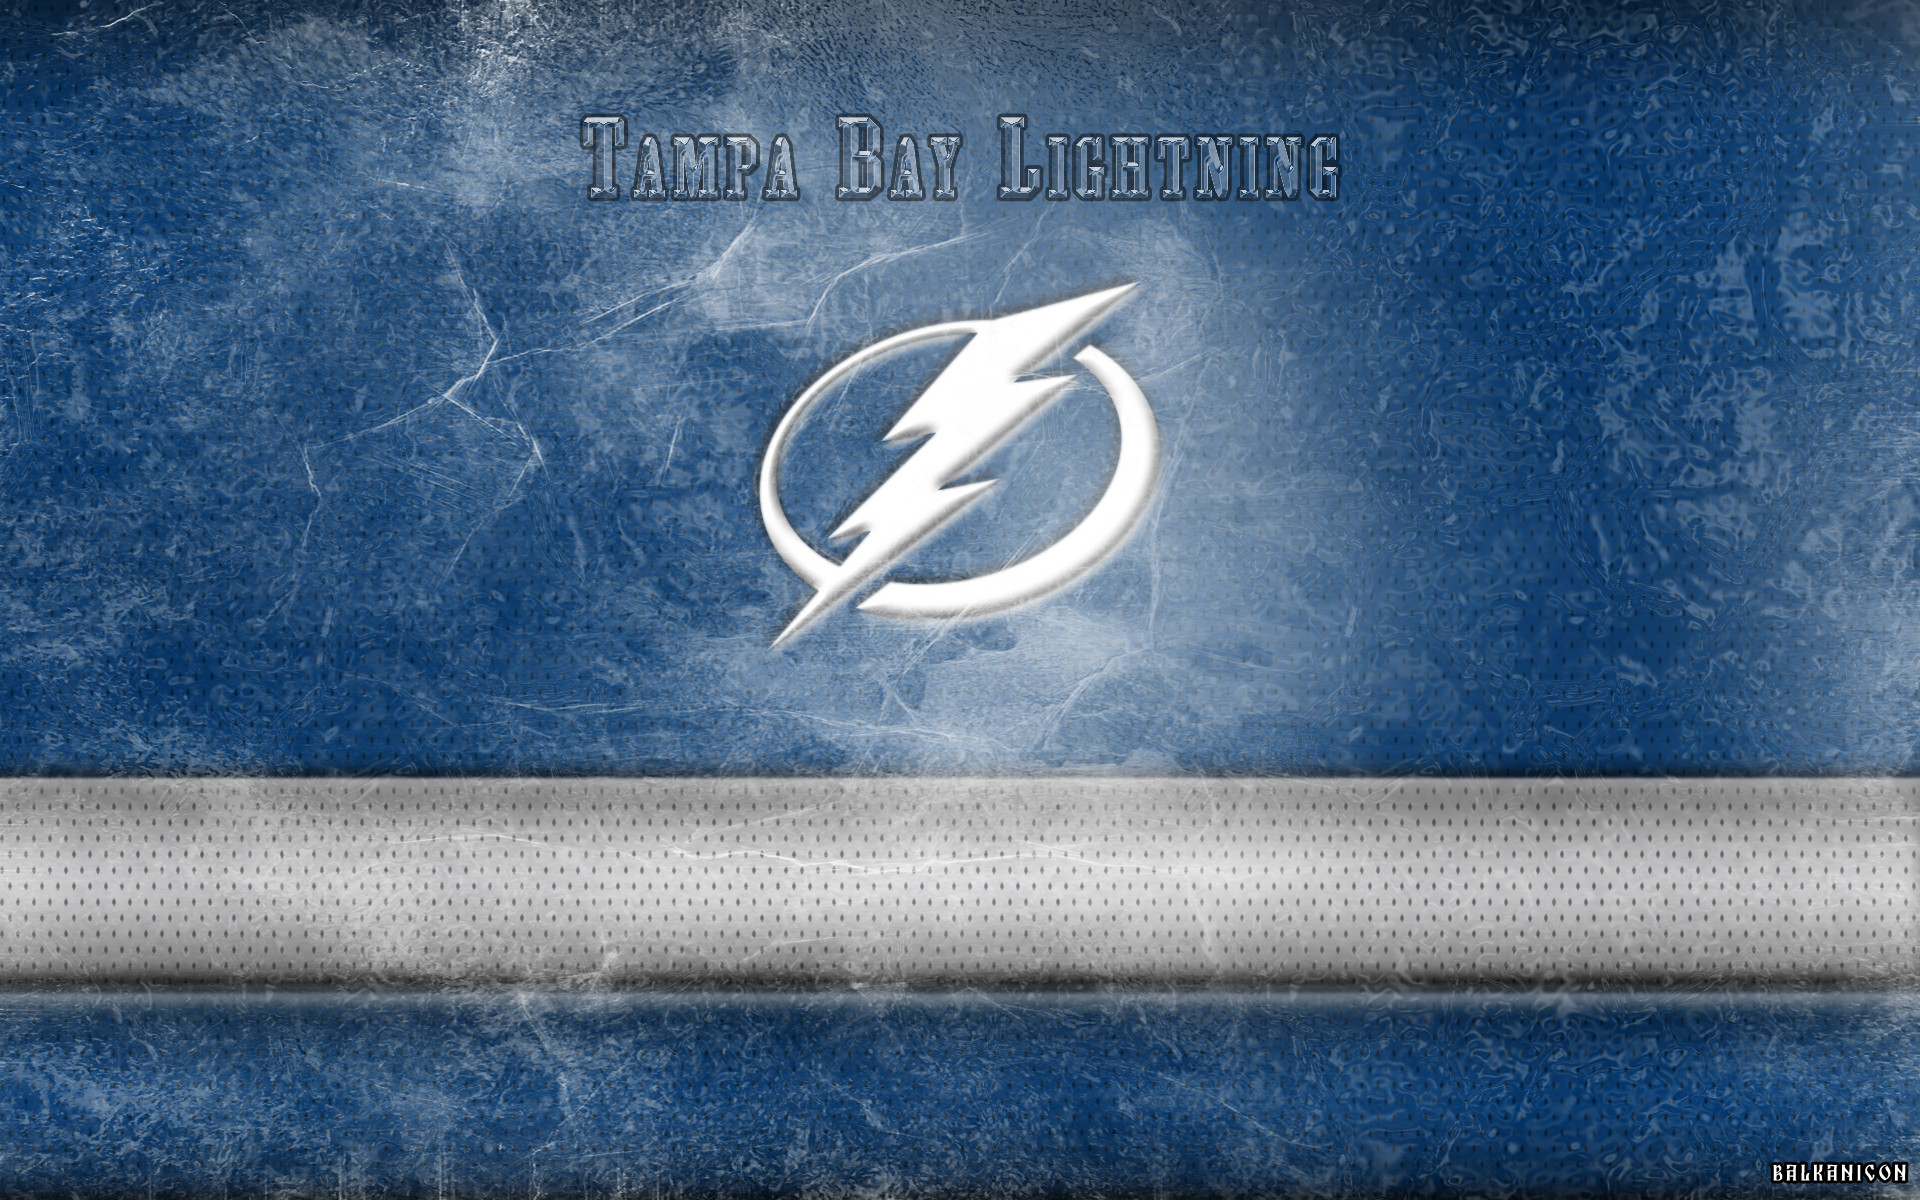 1920x1200 Tampa Bay Lightning wallpaper by Balkanicon Tampa Bay Lightning wallpaper  by Balkanicon